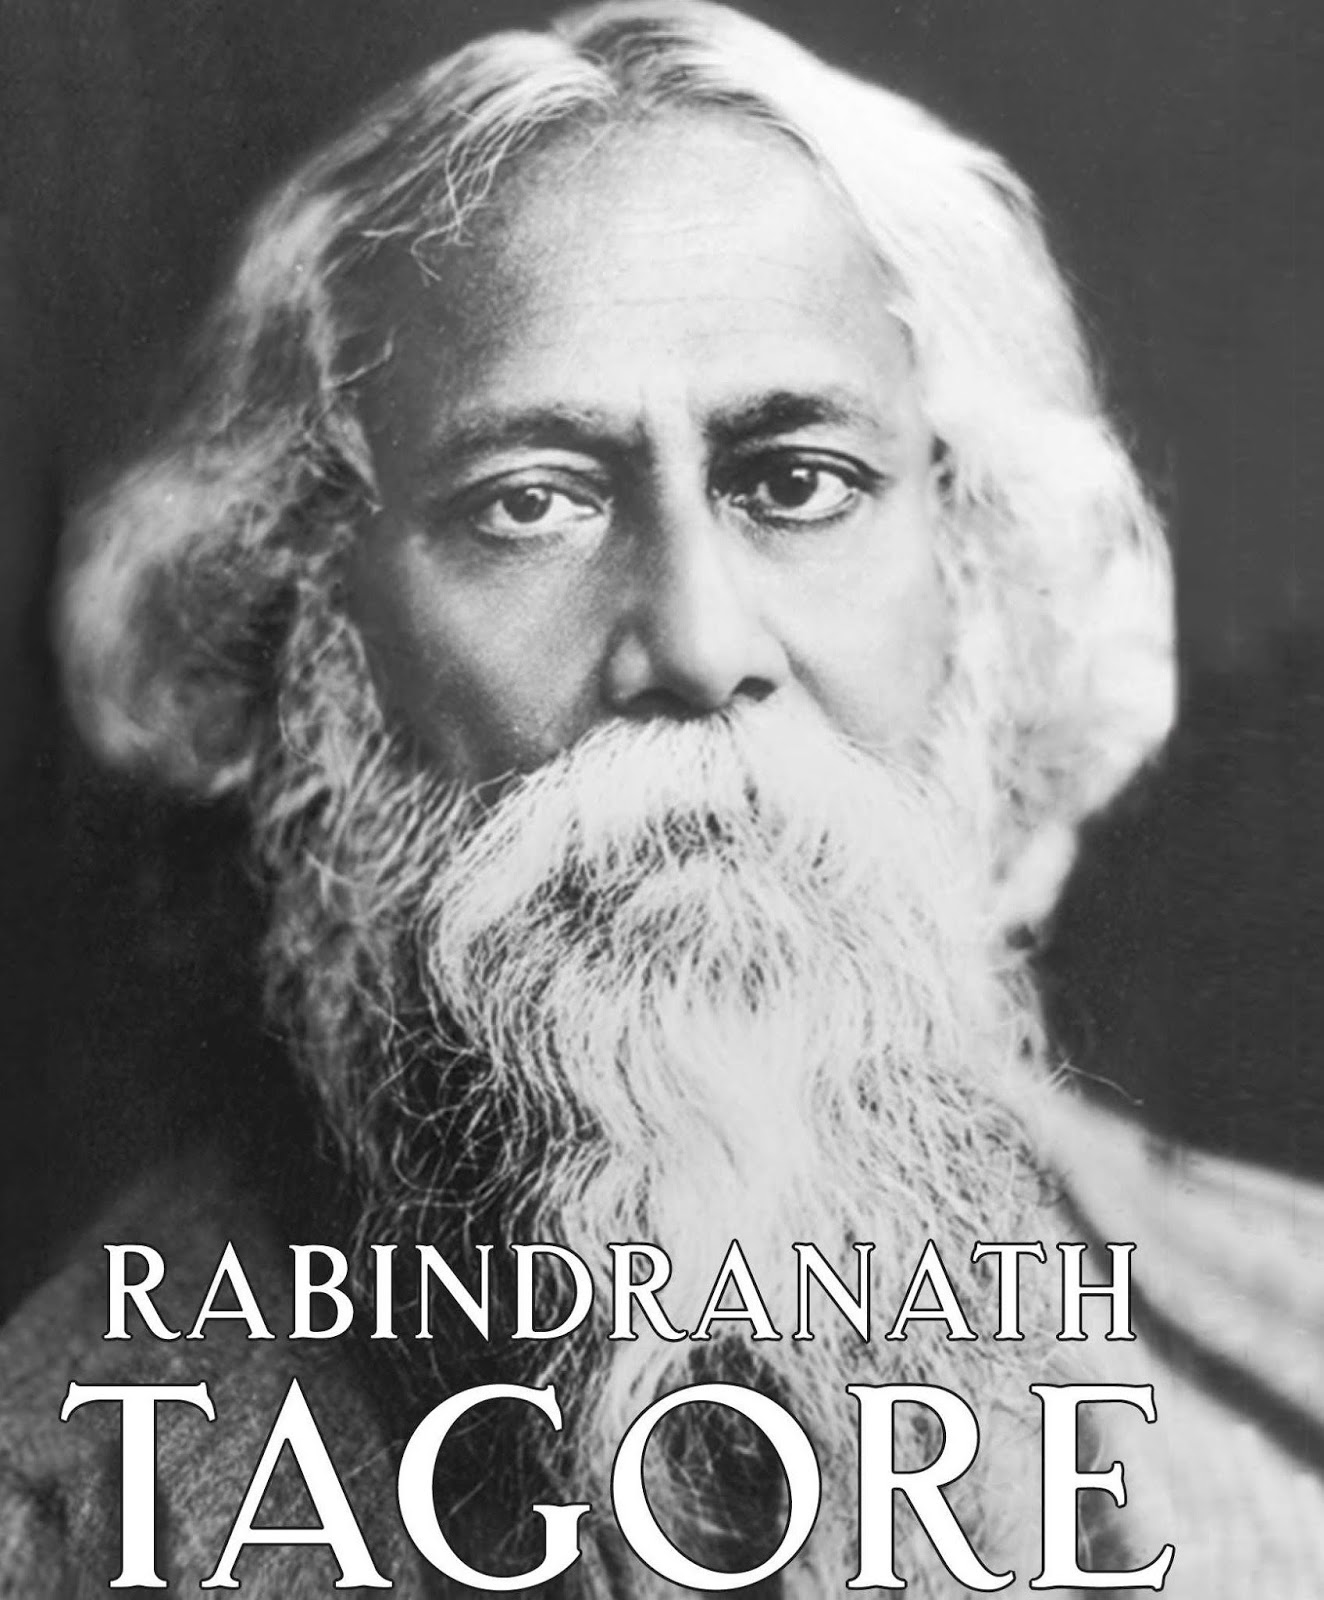 essay on rabindranath tagore best images about rabindranath tagore  short essay on rabindranath tagore an essay on rabindranath tagore the dreaming unicornrabindranath tagore gora rabindranath